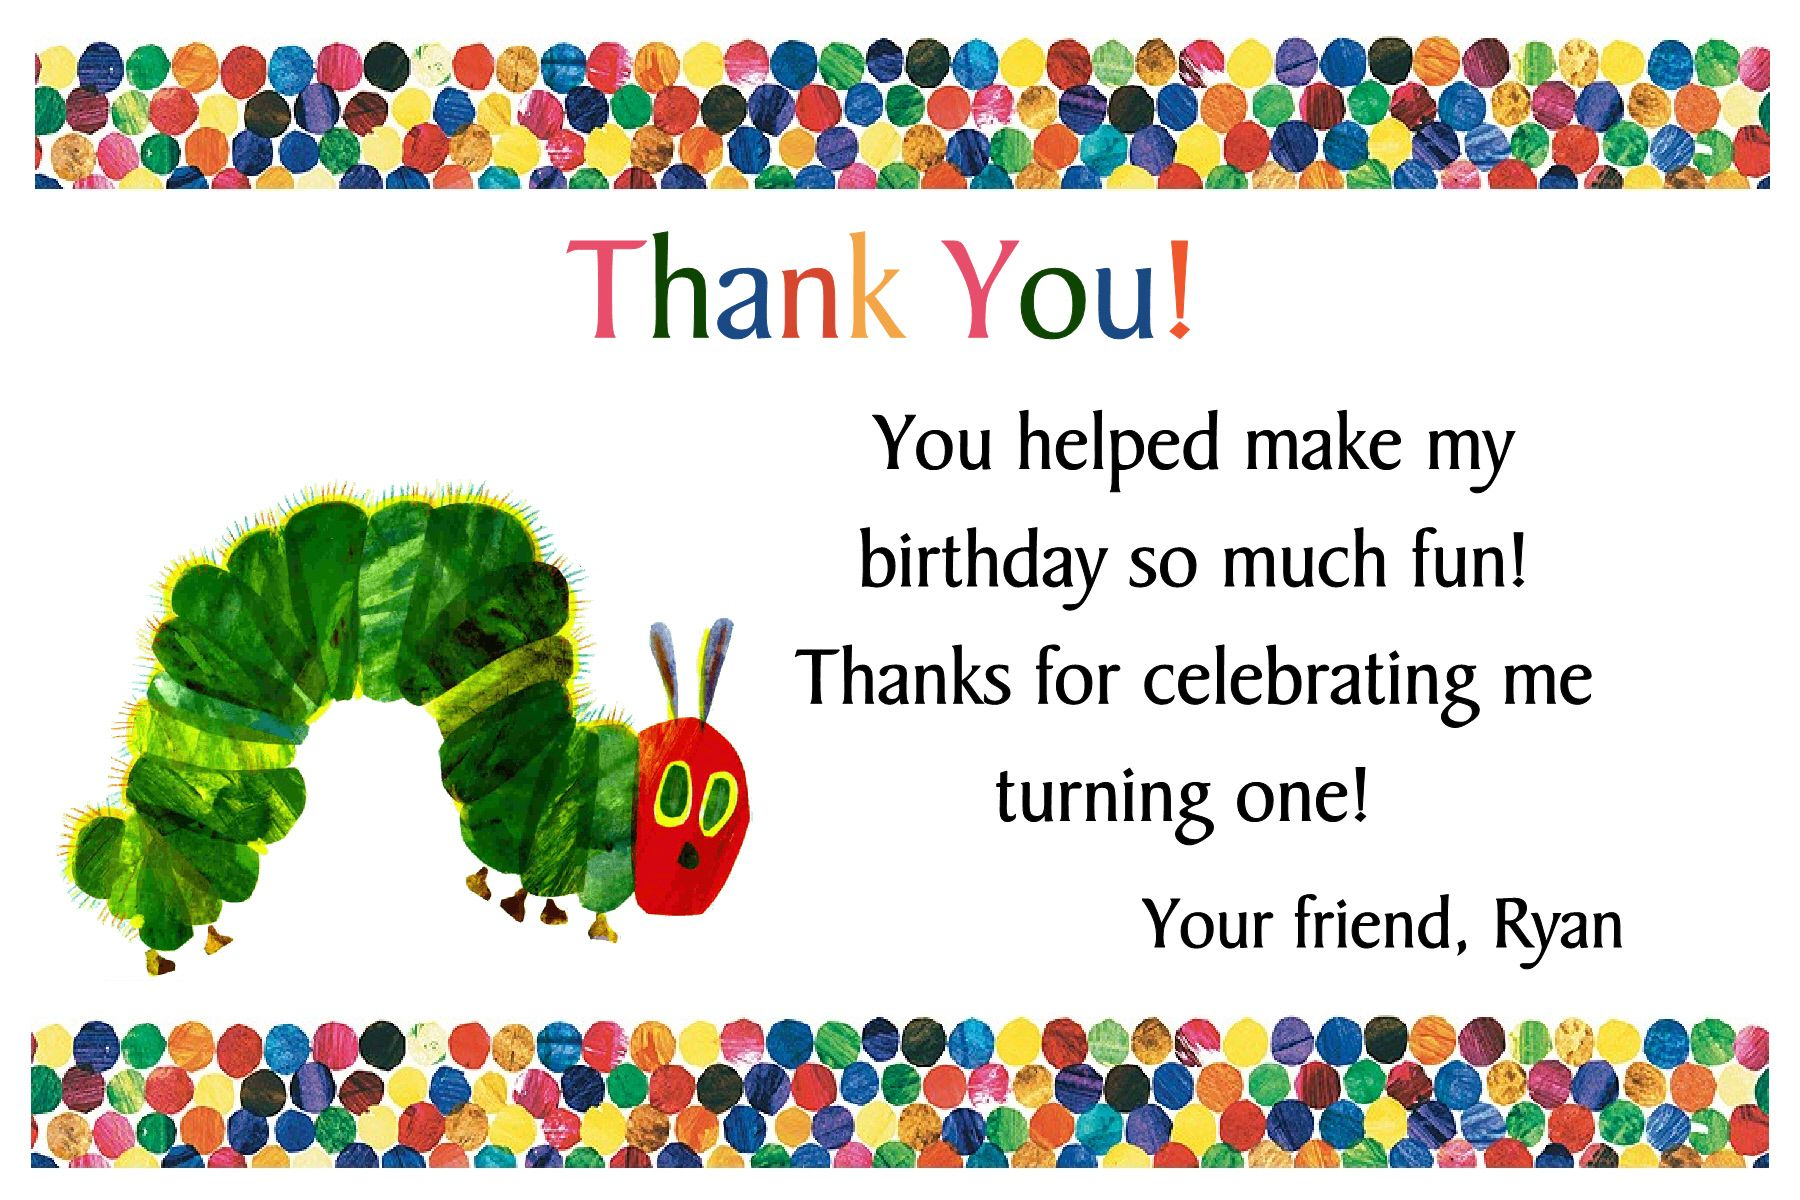 Very Hungry Caterpillar Thank You card on the image twice to